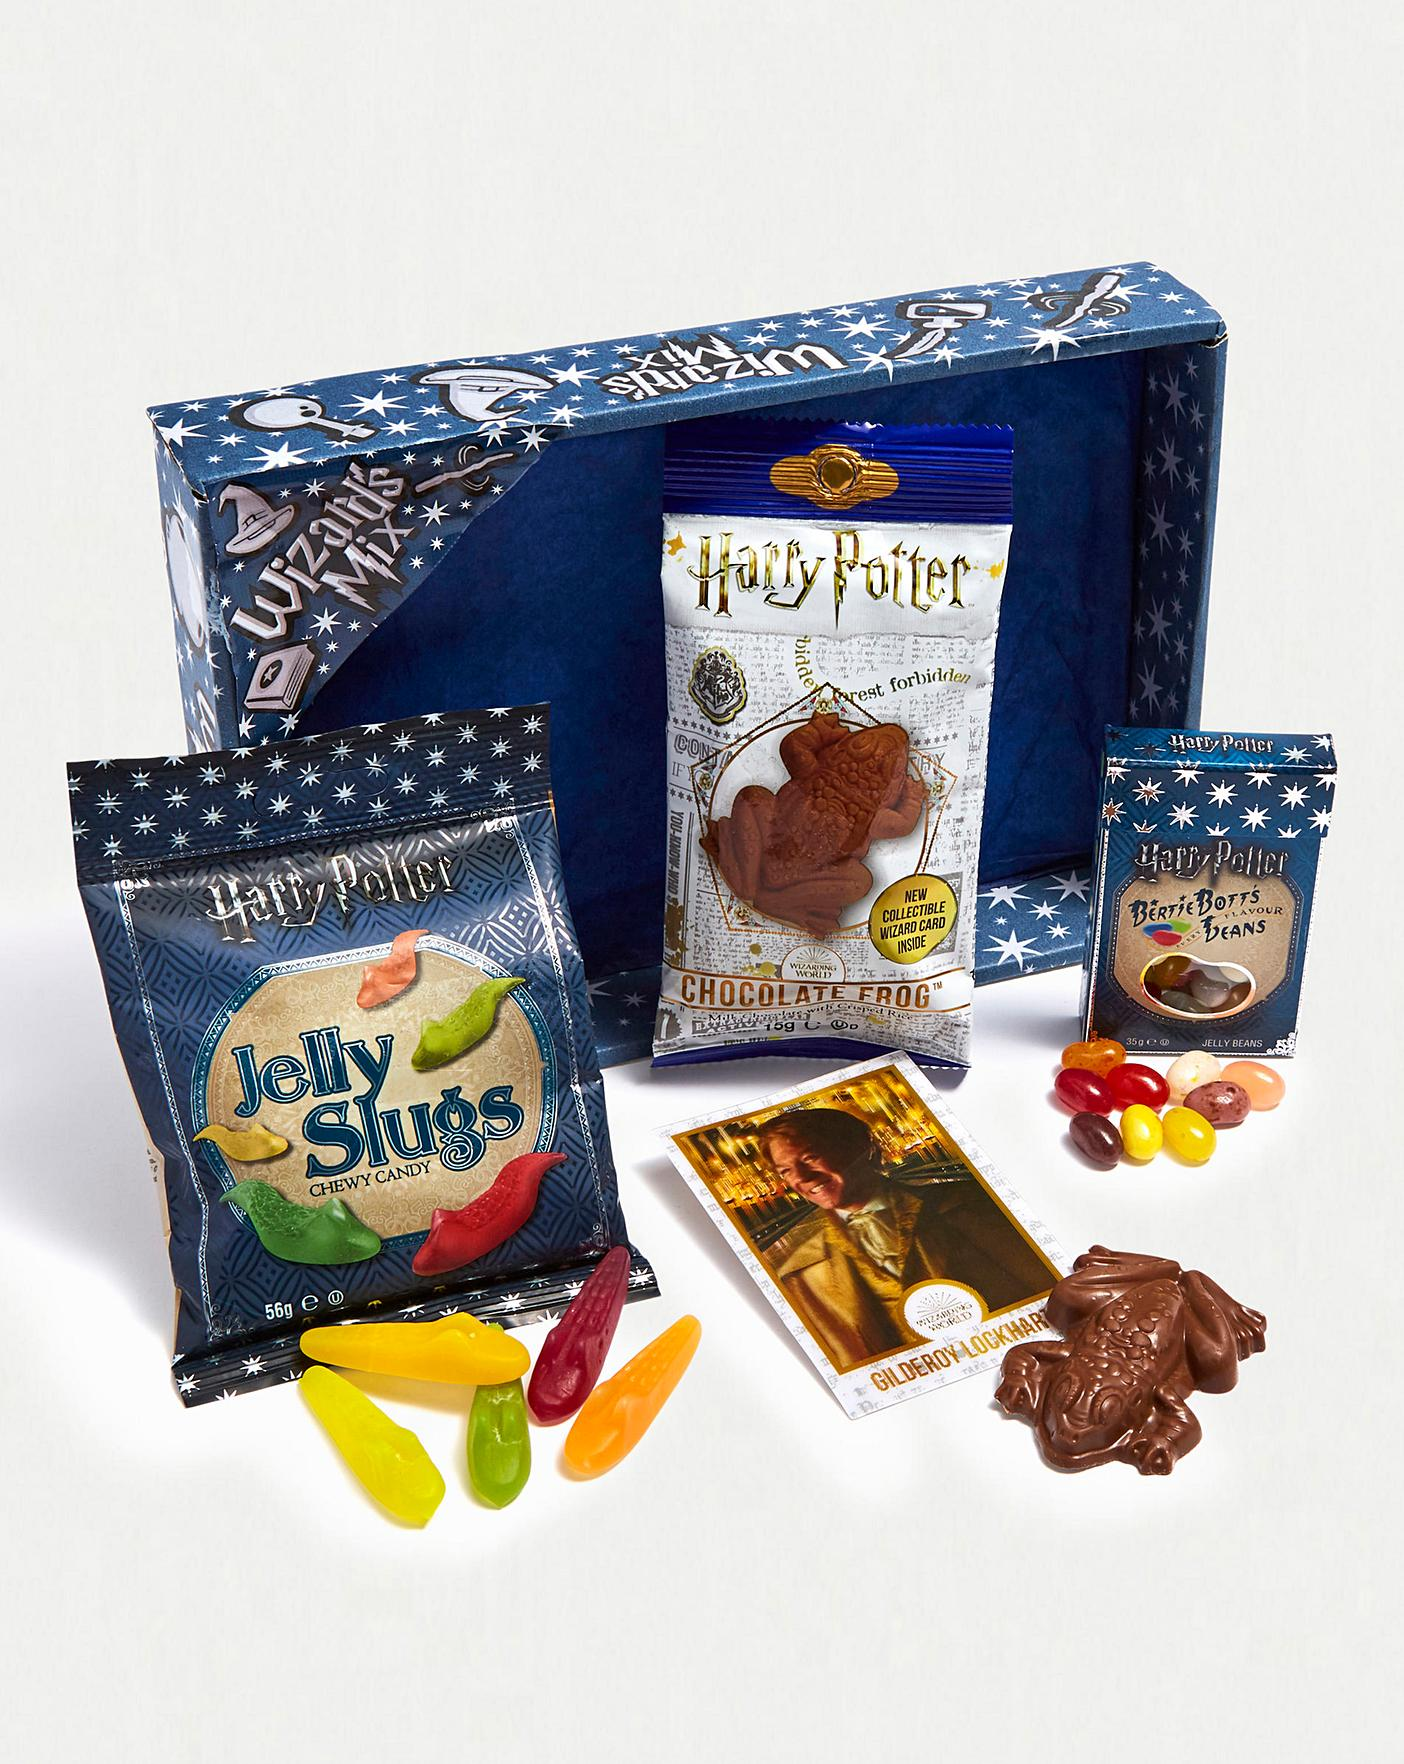 Harry Potter Hamper (100G)-8238